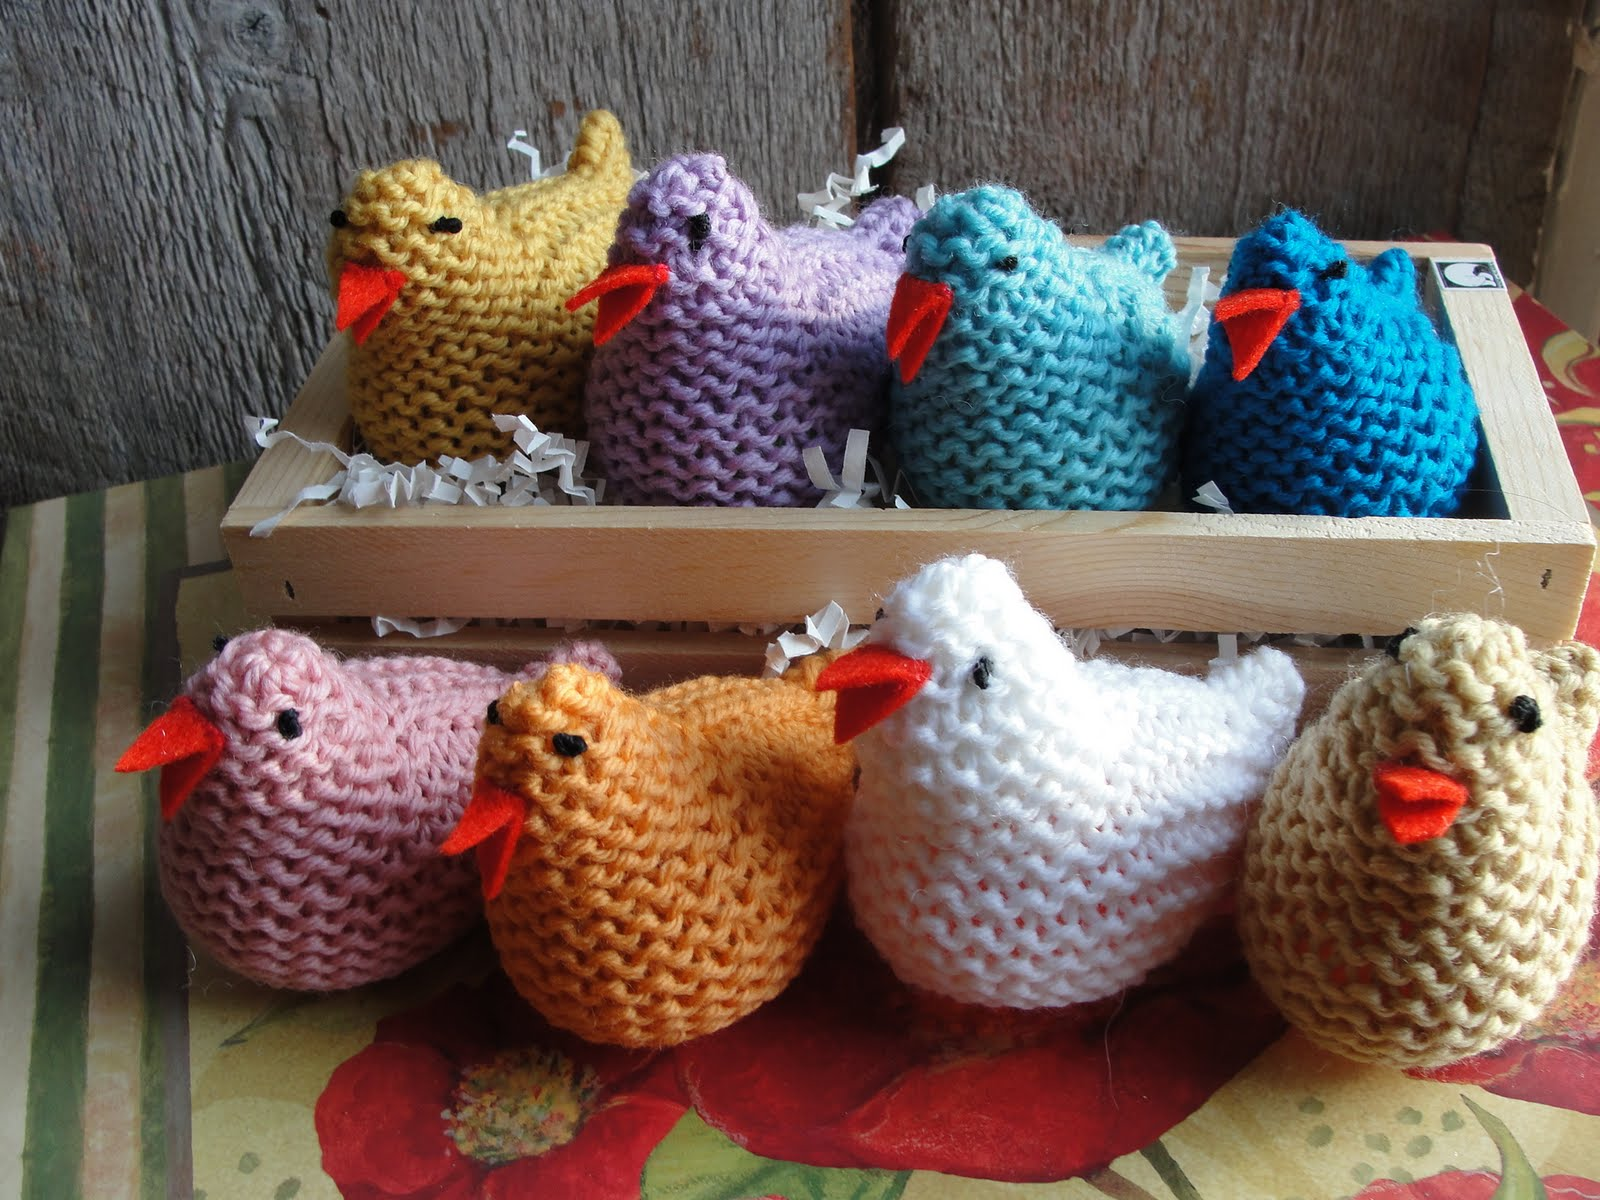 Easter Chick Knitting Pattern Instructions : A Doll Shop of My Own: Knitted Easter Chicken